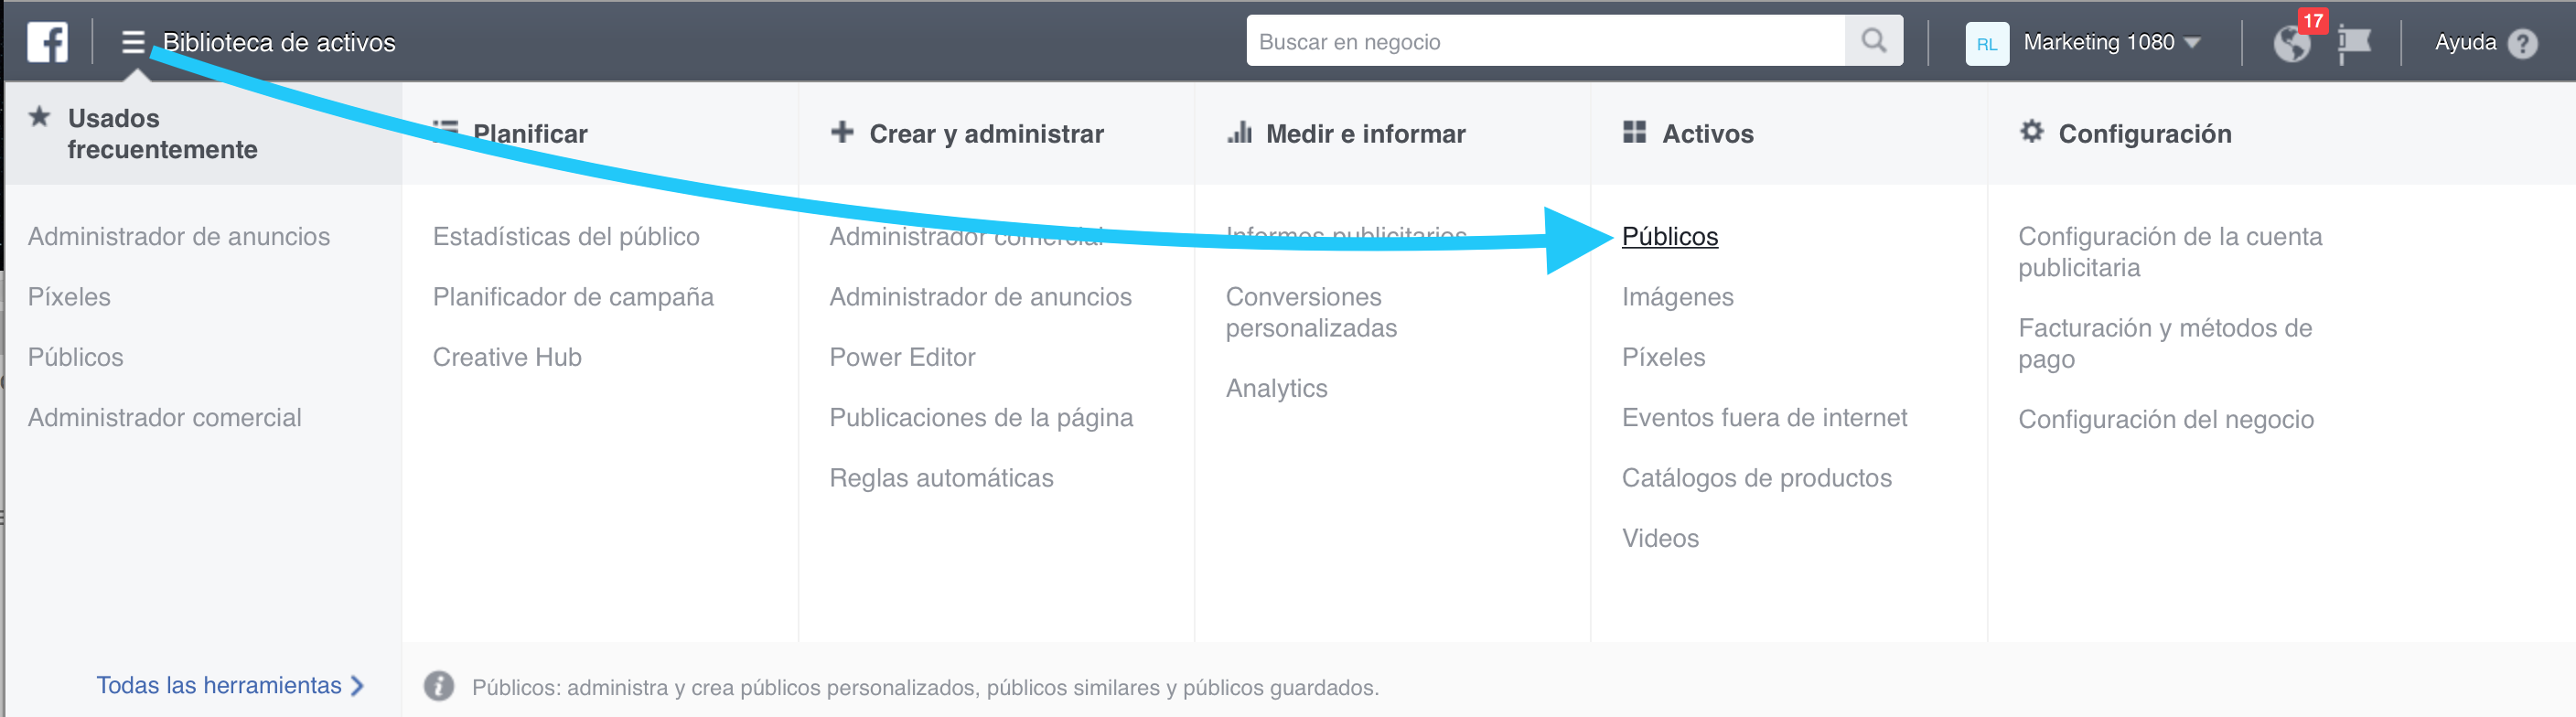 Creando publico personalizado desde tu lista de suscriptores 1 - Aprendamos Marketing